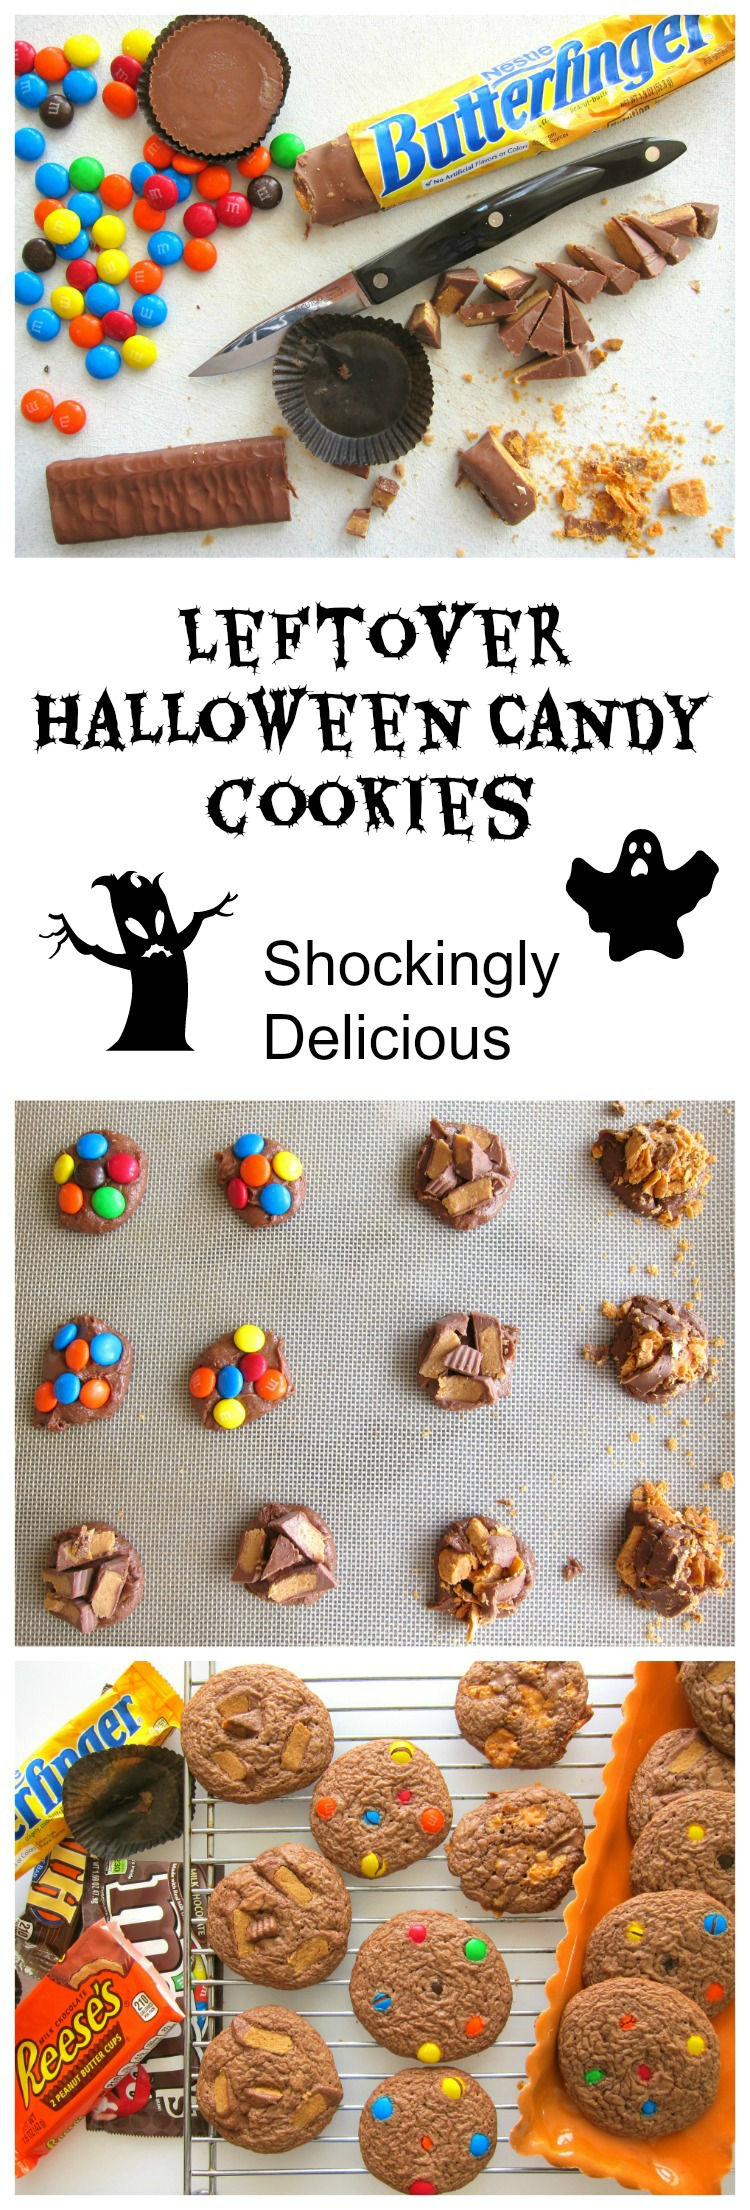 Leftover Halloween candy makes the best cookies, and is a dandy way to use it up. This classic recipe solves your November candy problems. | ShockinglyDelicious.com